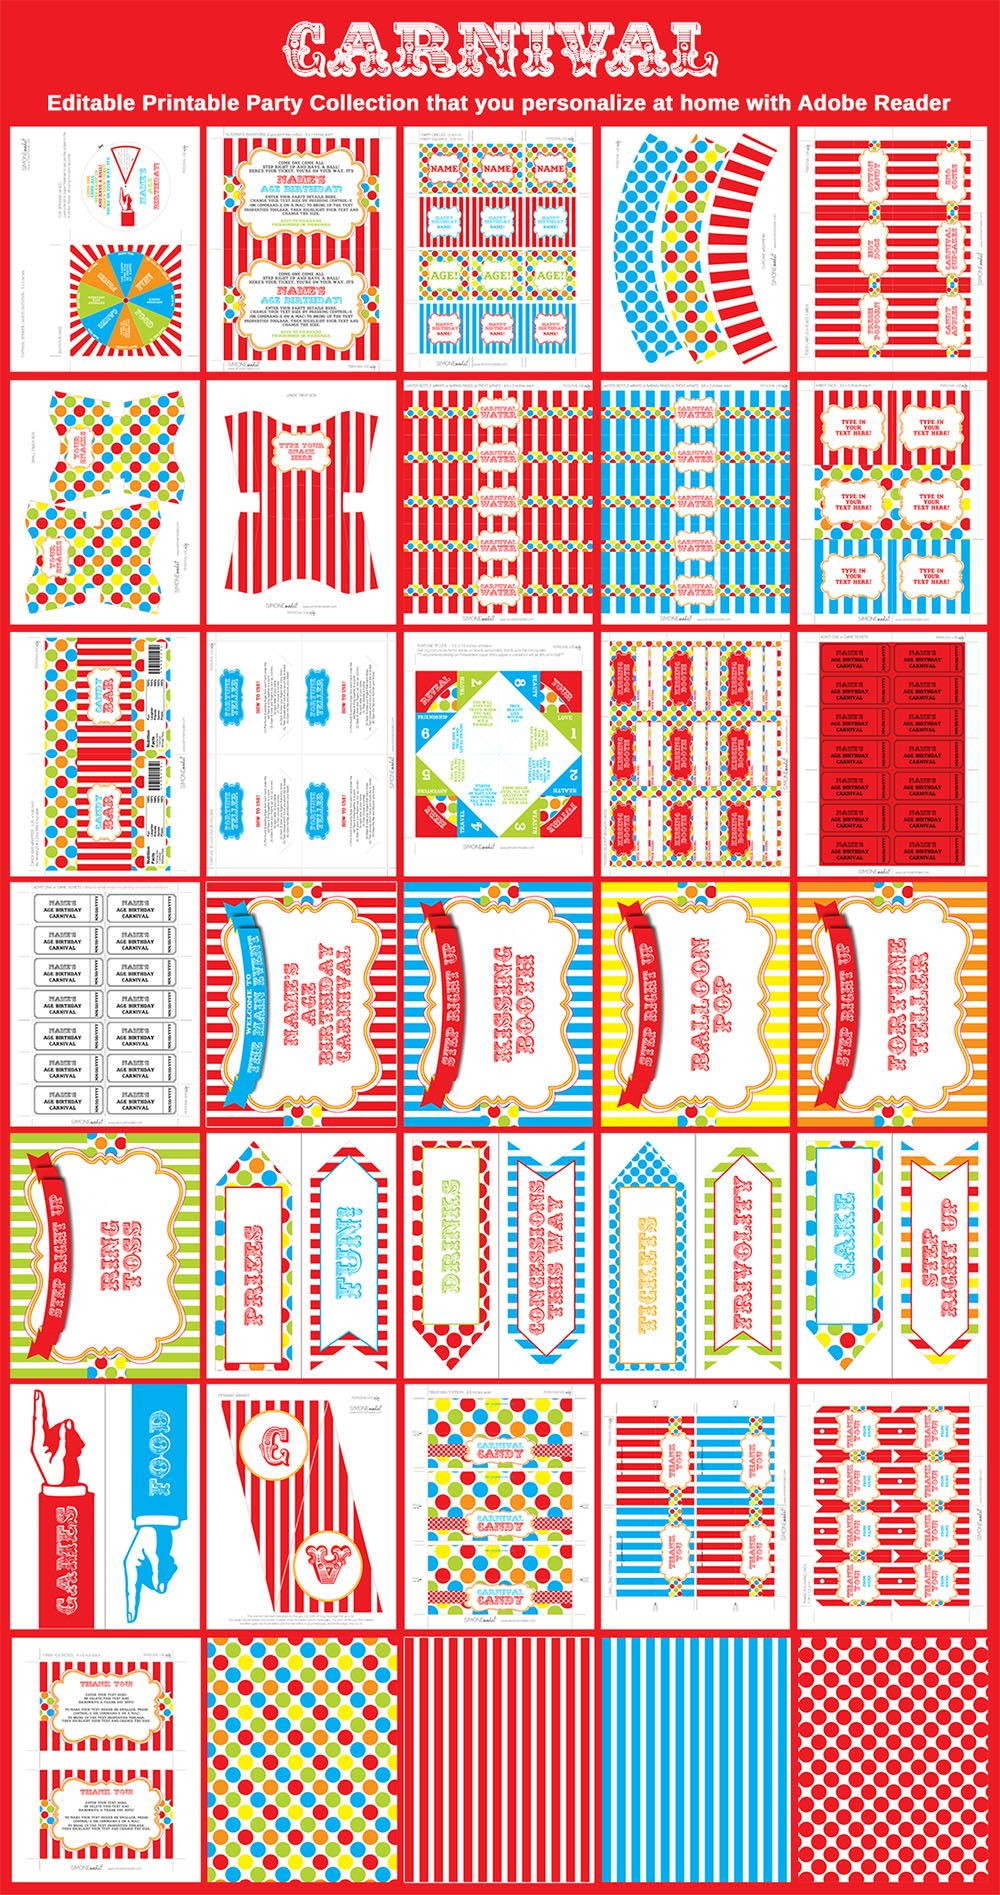 decorations party circus luxury vectorsecurity me on decor images and throughout ideas amazing pinterest best theme